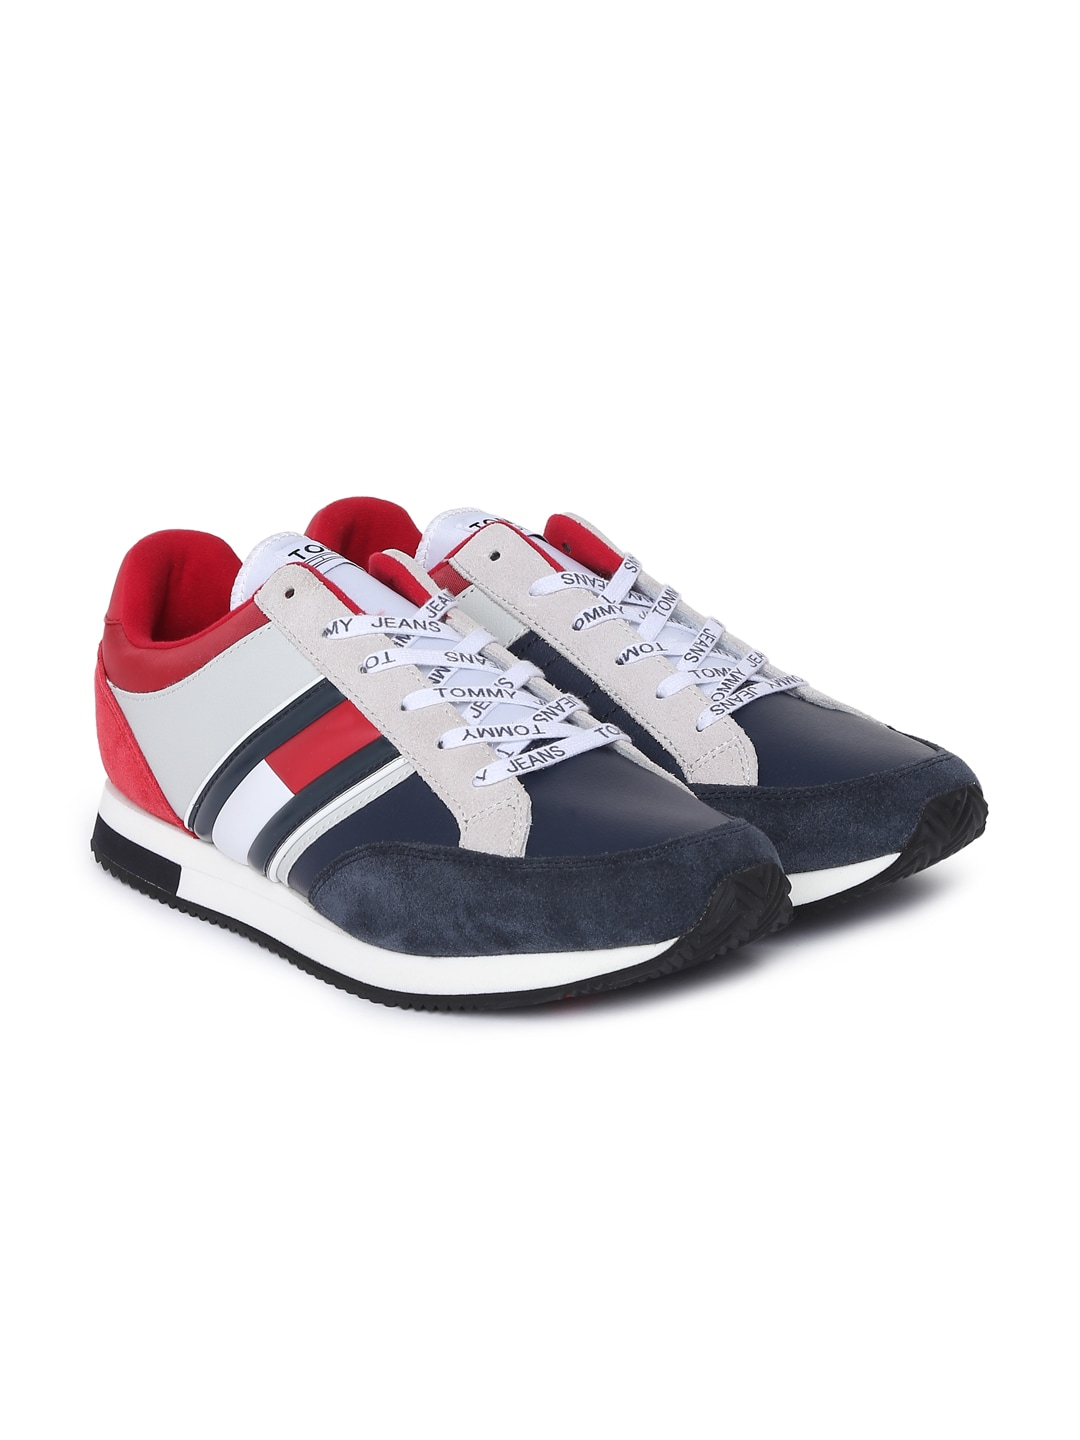 fa0151a10 Tommy Hilfiger Shoes Sandal - Buy Tommy Hilfiger Shoes Sandal online in  India